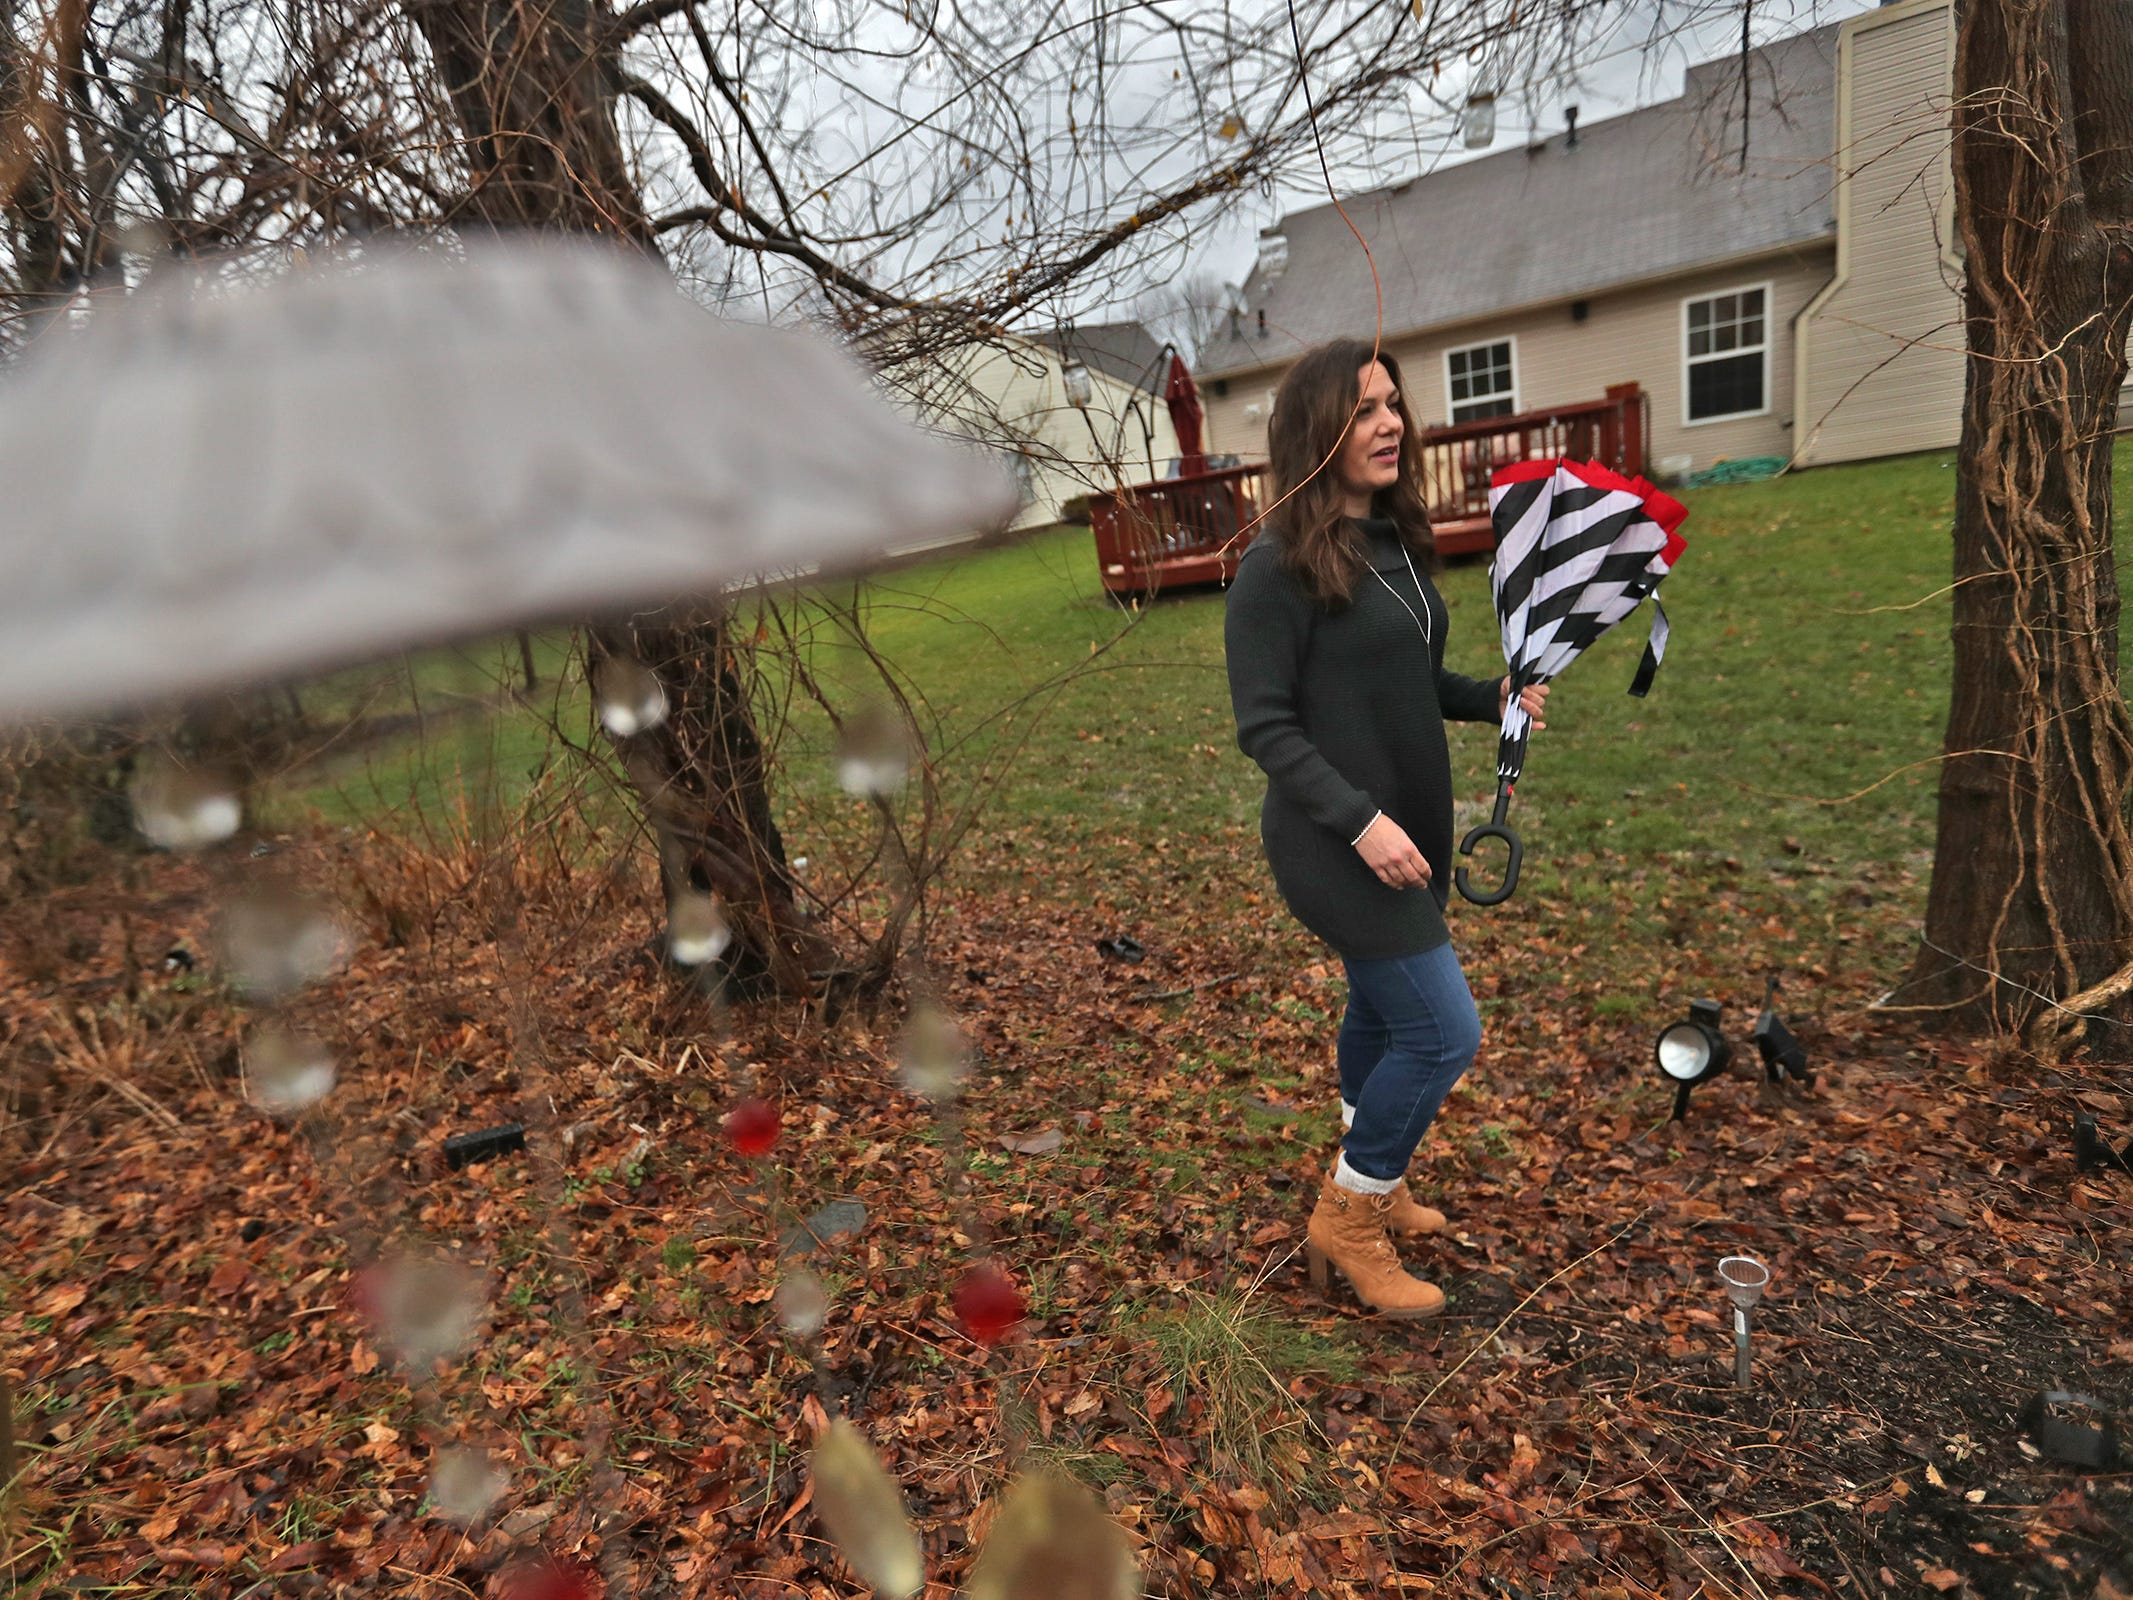 Marcy Kellar stands in her back yard in Fishers along the Nickel Plate railroad tracks, Monday, Dec. 31, 2018.  She worries about her loss of privacy and the loss of her garden that fills her with joy, when a trail is built along the track.  She plants lots of flowers and greenery, and fills her garden with solar-powered lights and art.